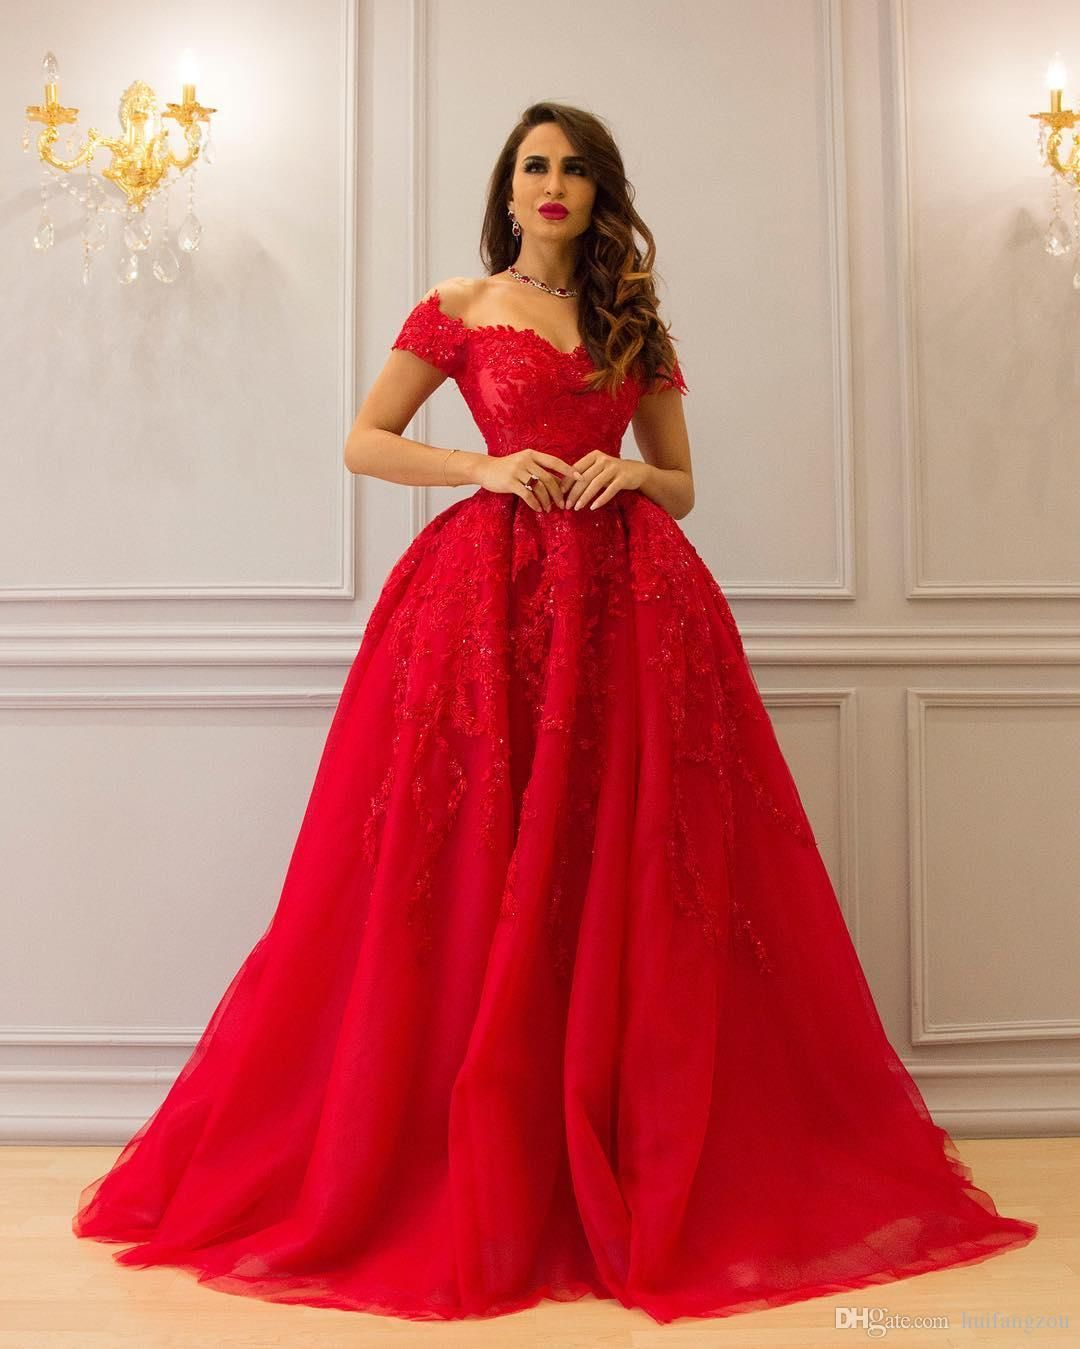 1cbcc1cfd6 Red 2017 Ball Gown Lace Evening Dresses Appliques Beaded Off Shoulder  Neckline Prom Dress Floor Length Ruffles Formal Evening Gowns